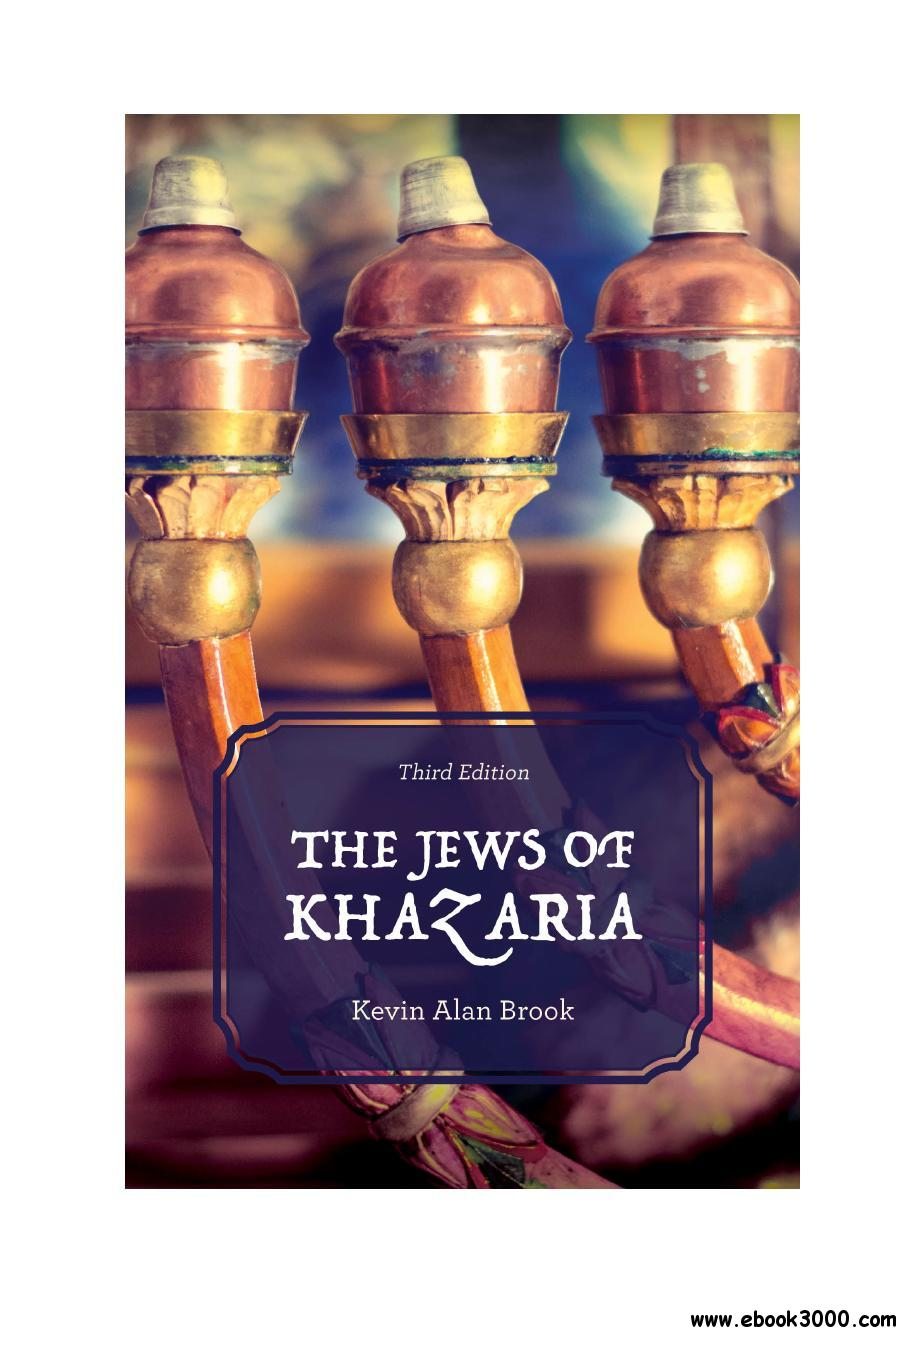 The Jews of Khazaria, 3rd Edition